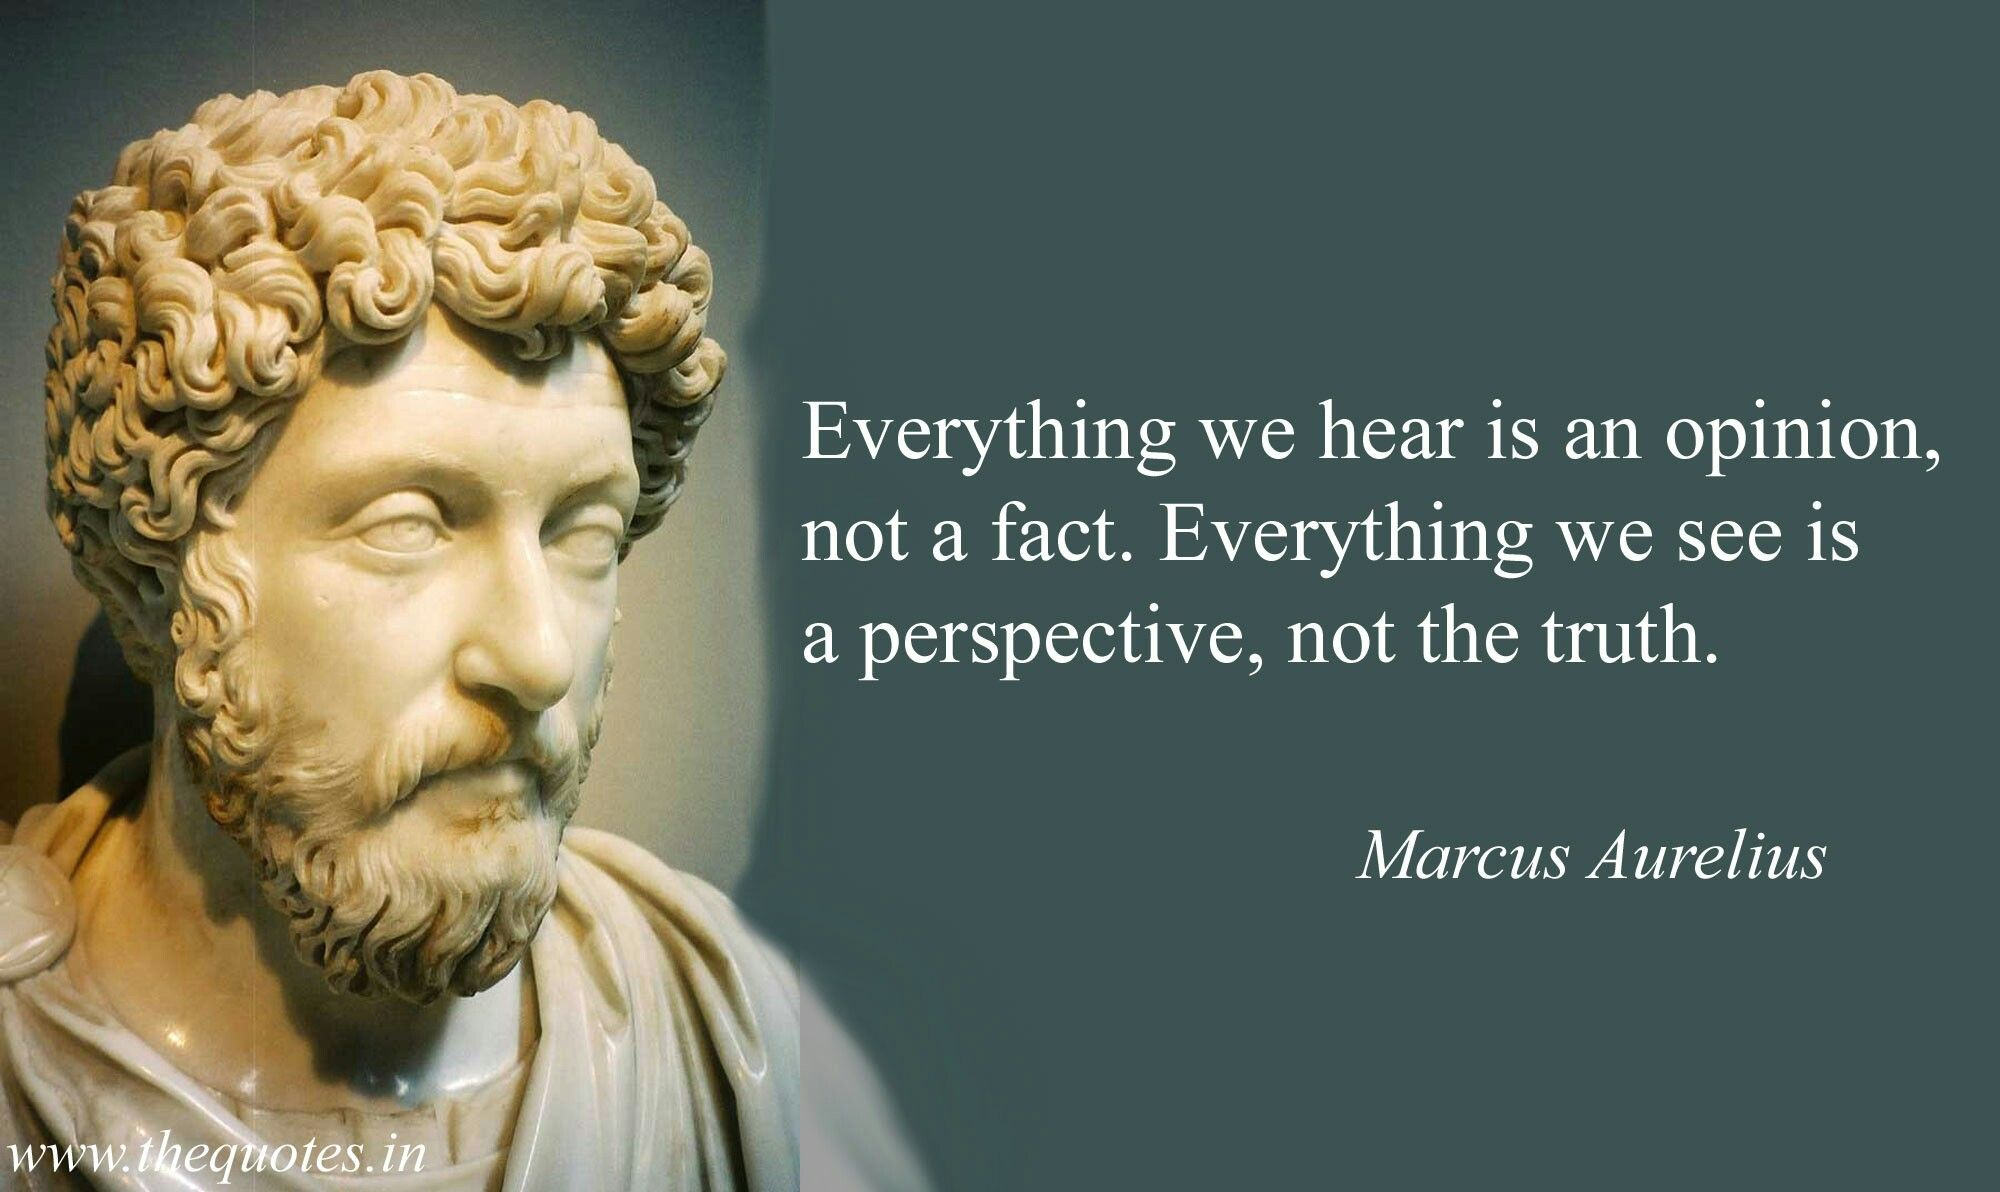 Marcus Aurelius Quotes Classy Marcus Aurelius  Sayings And Quotes  Pinterest  Quotation